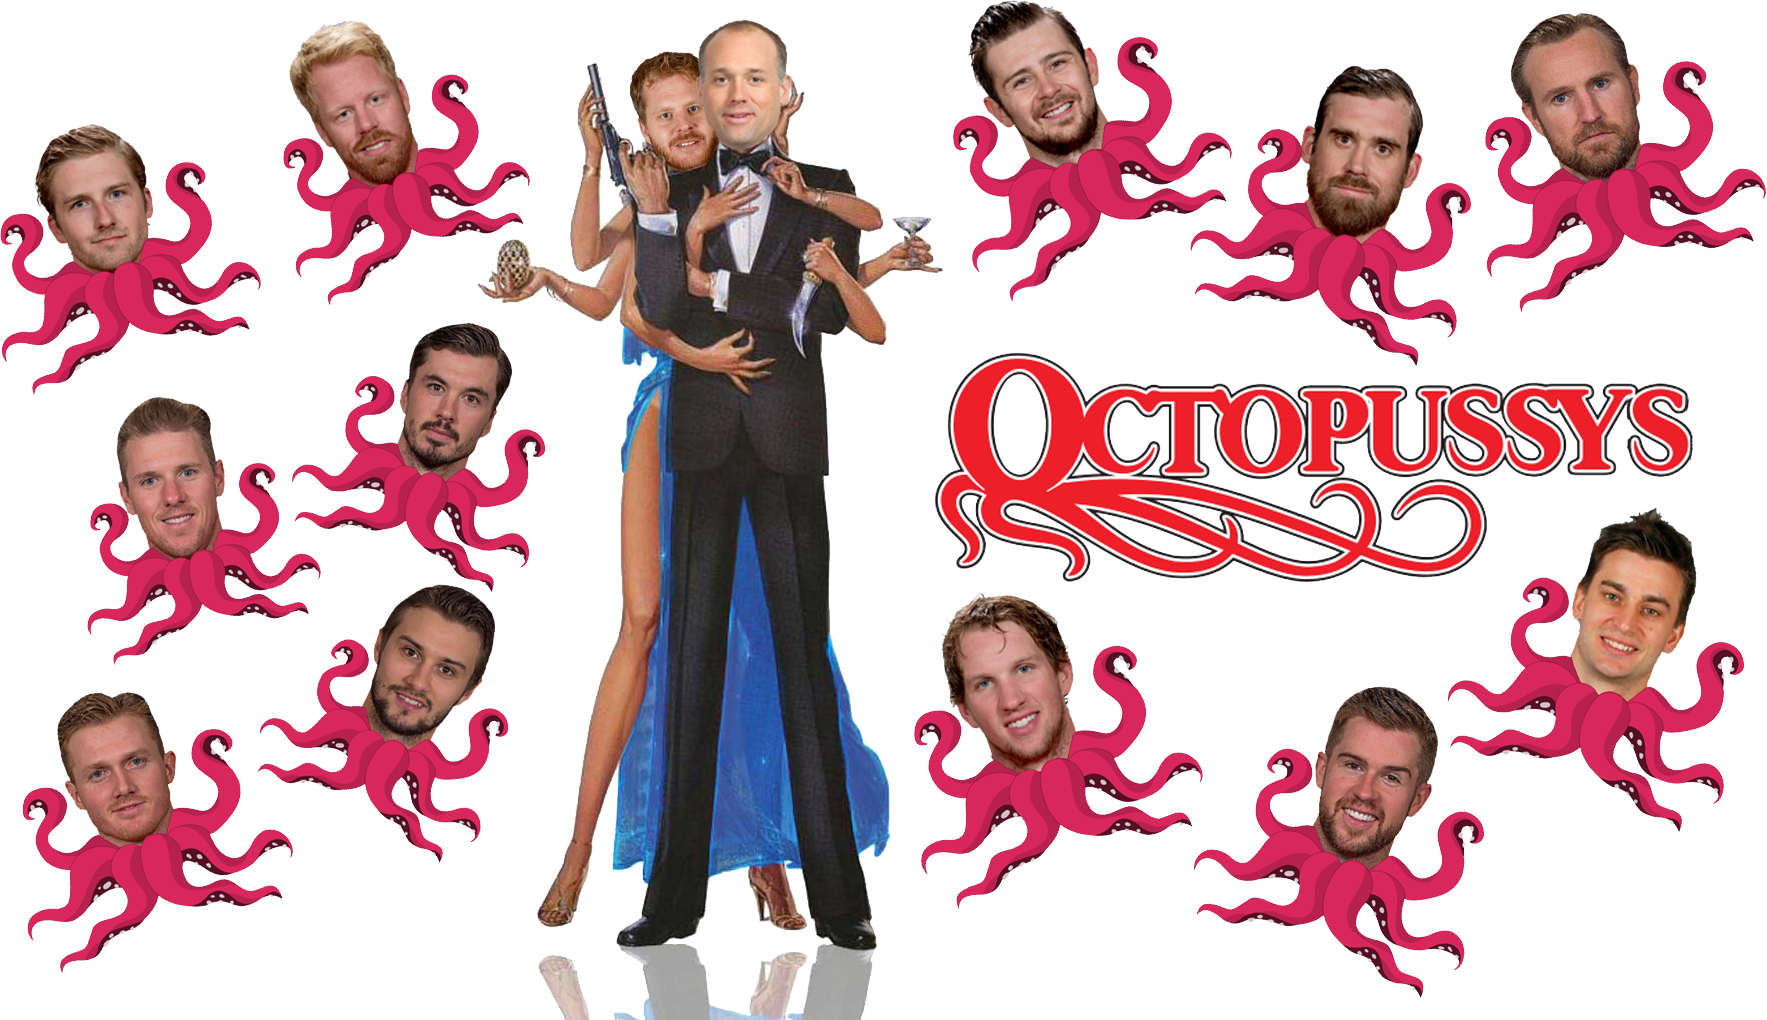 detroit-octopussys